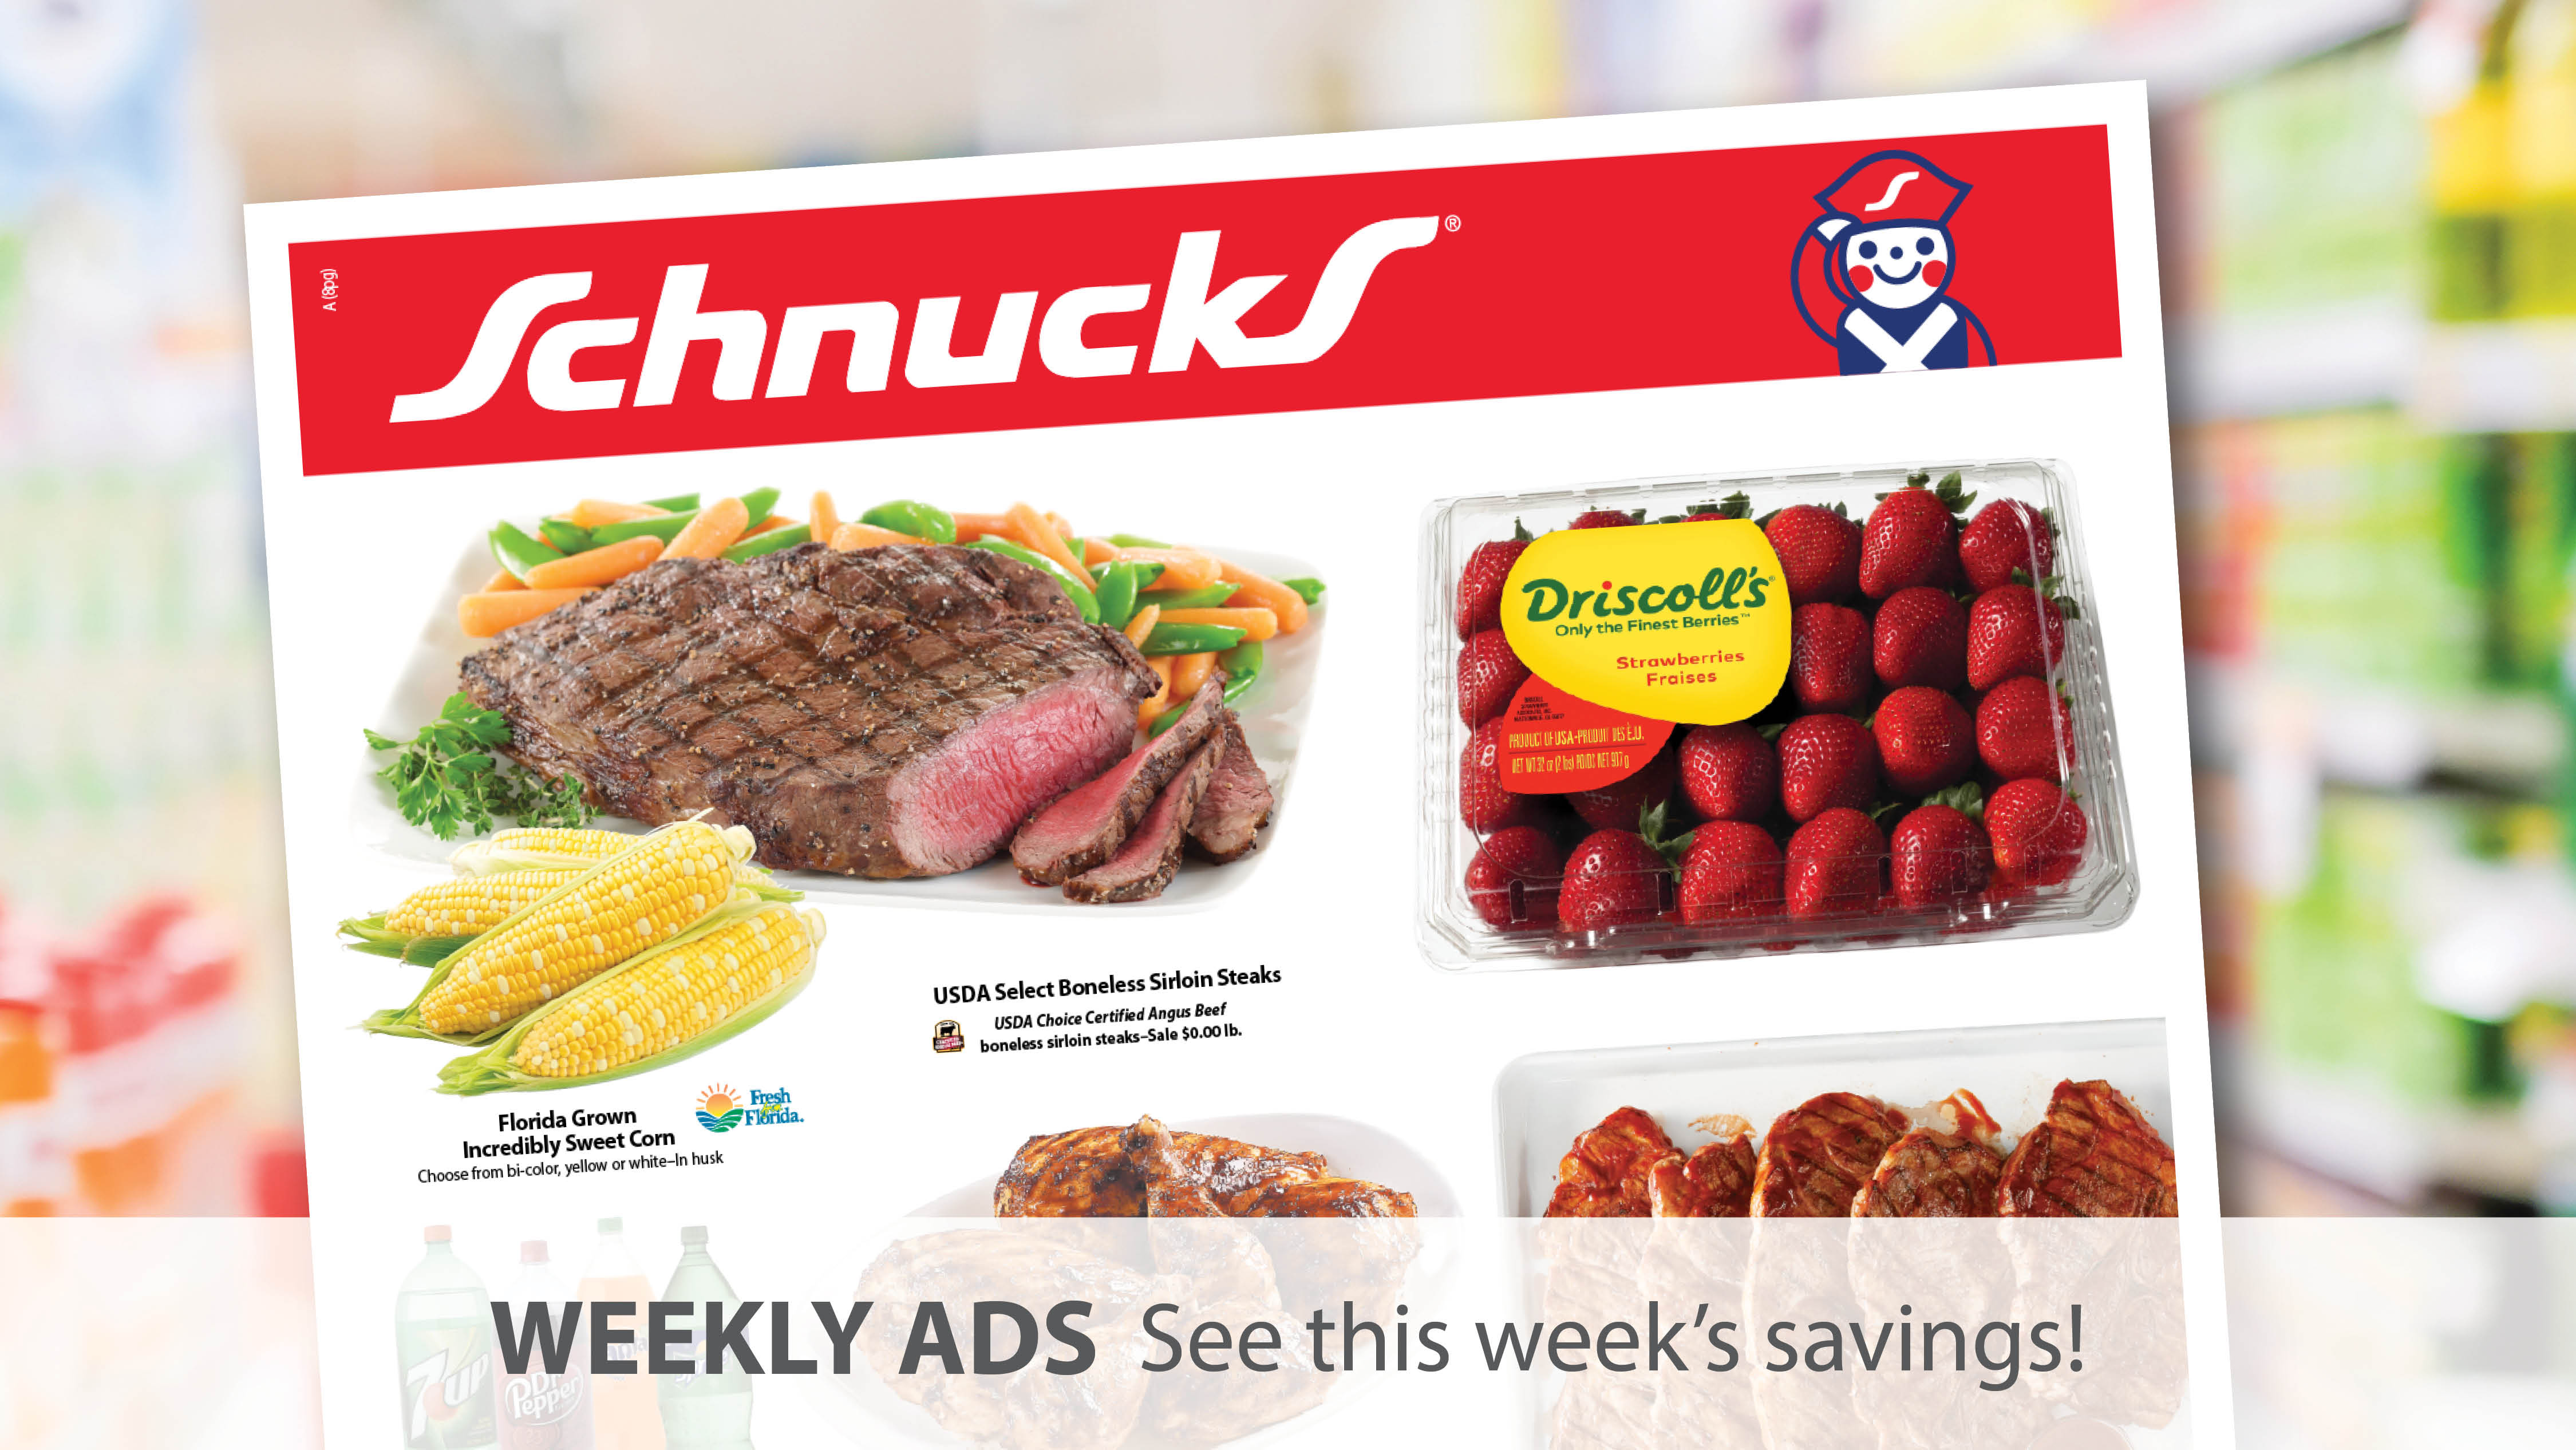 Weekly Ads